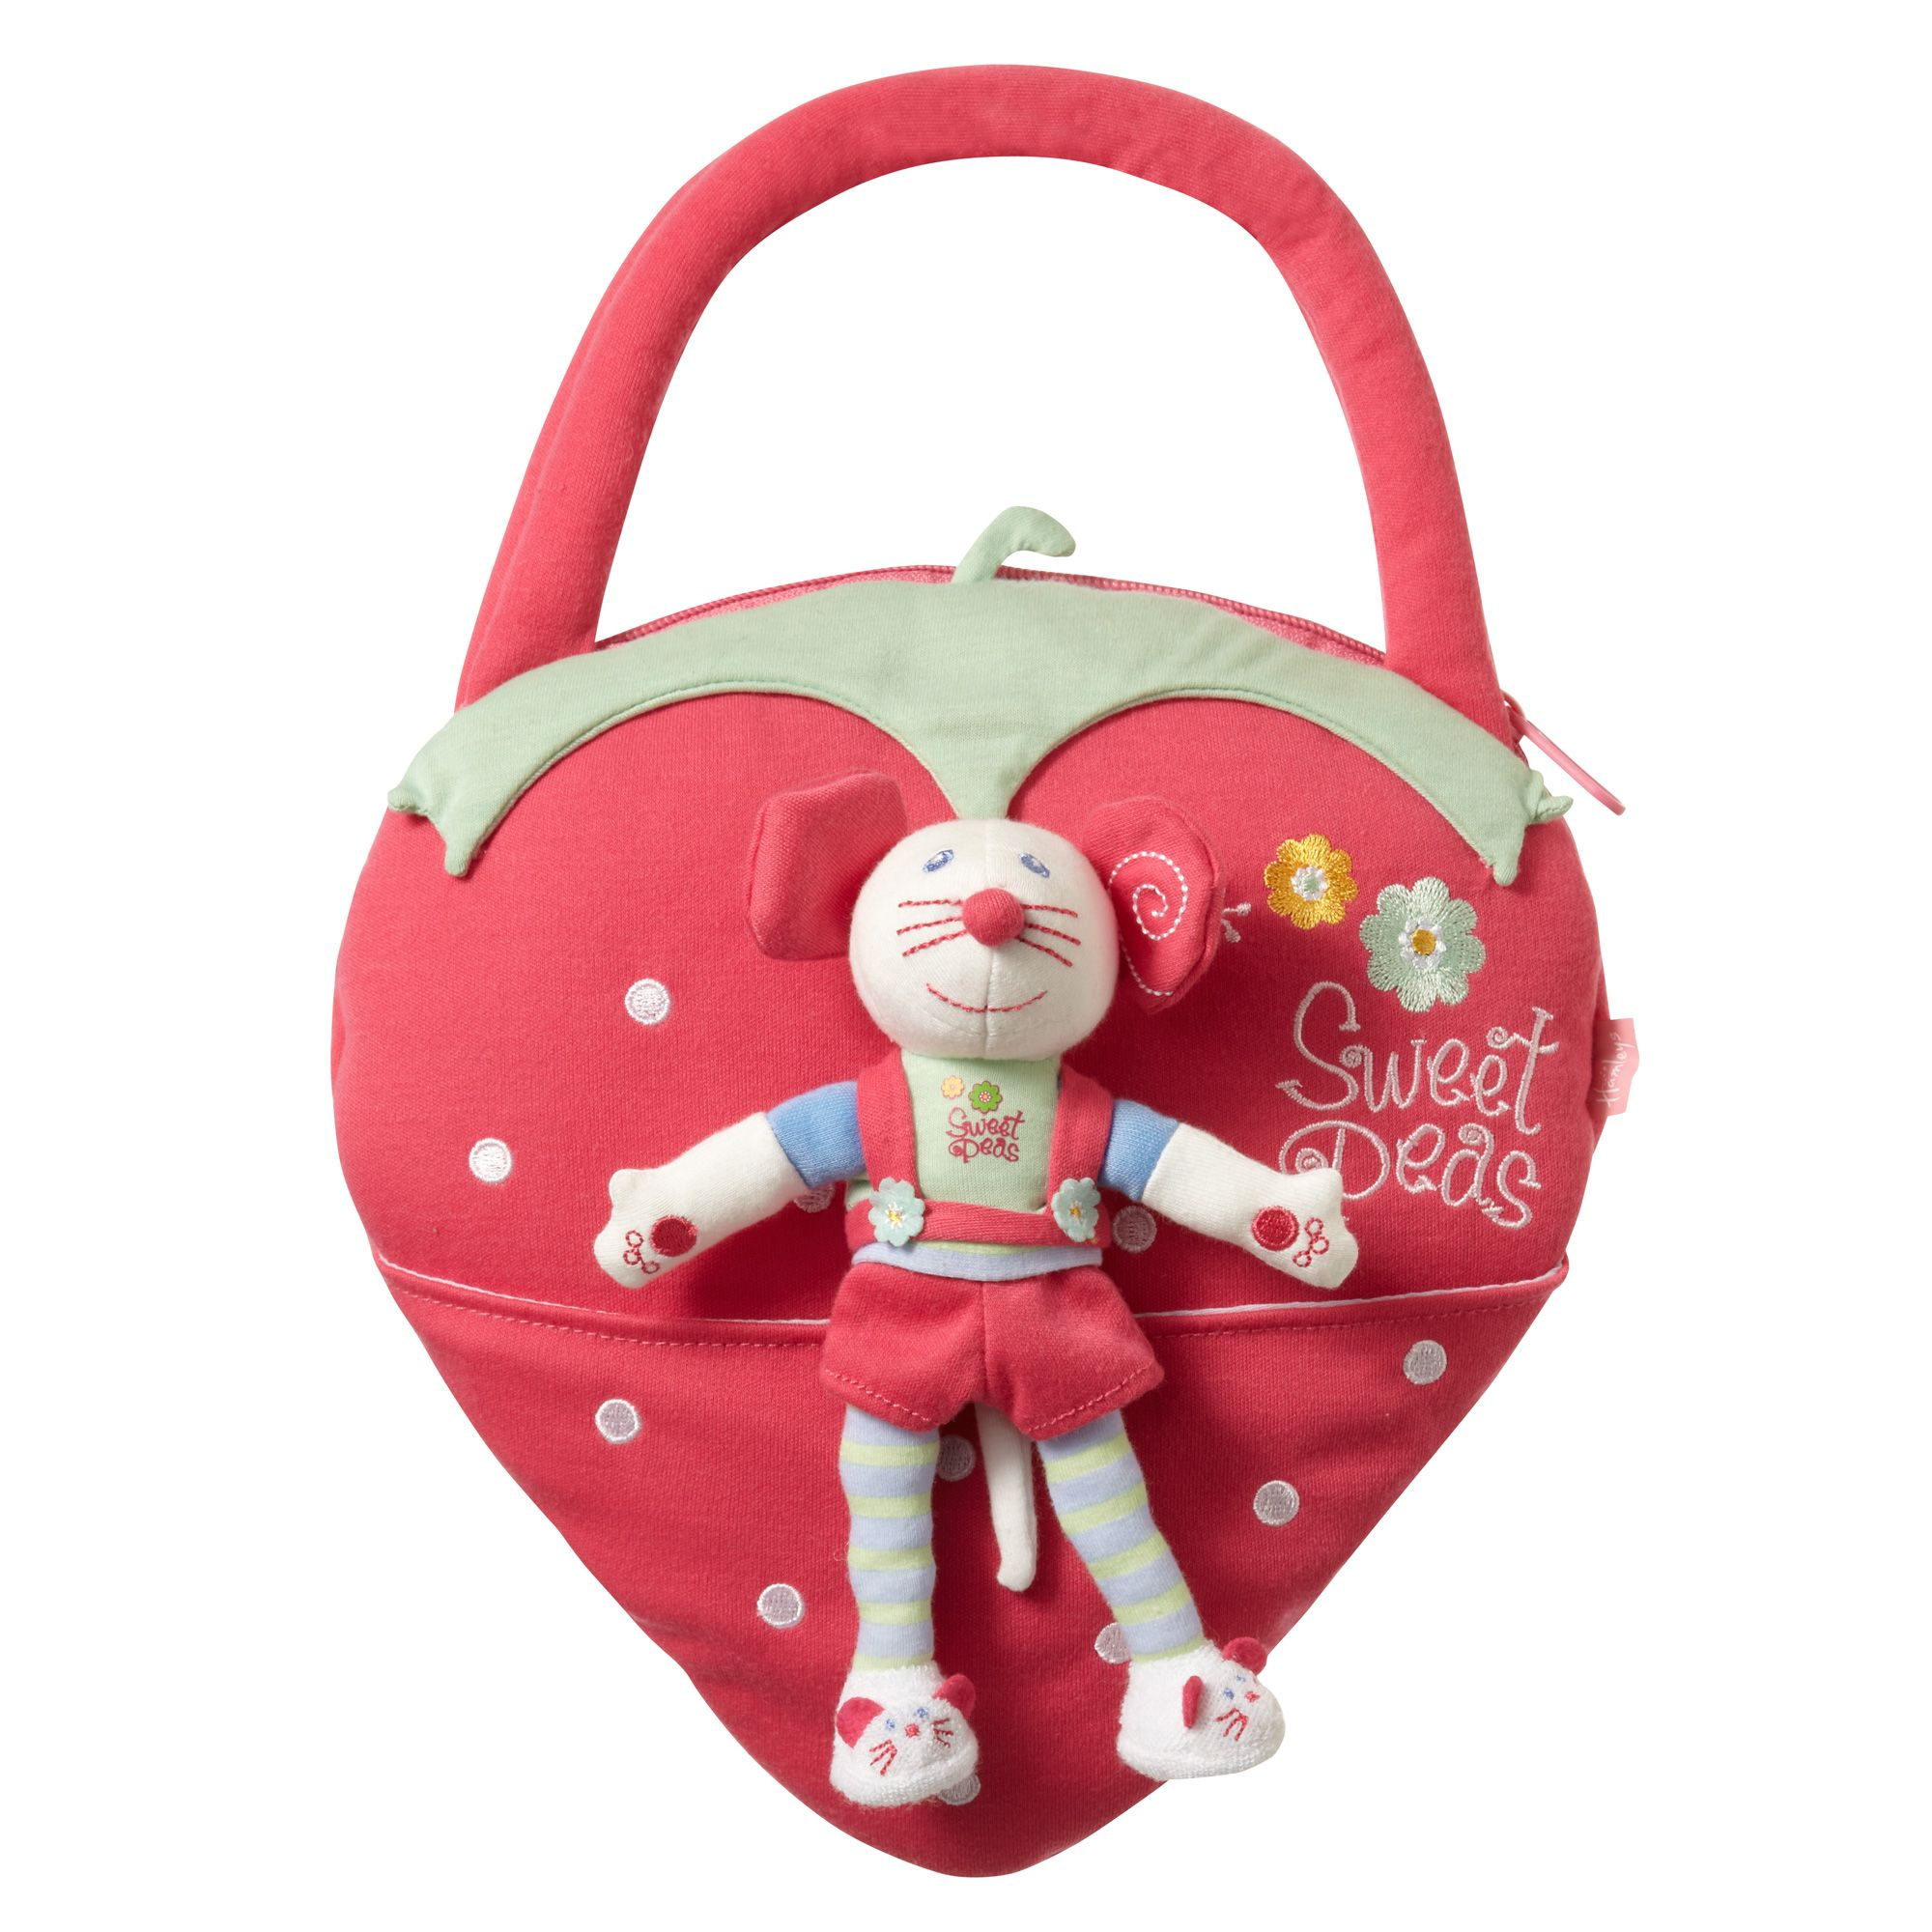 Hamleys mossy mouse handbag